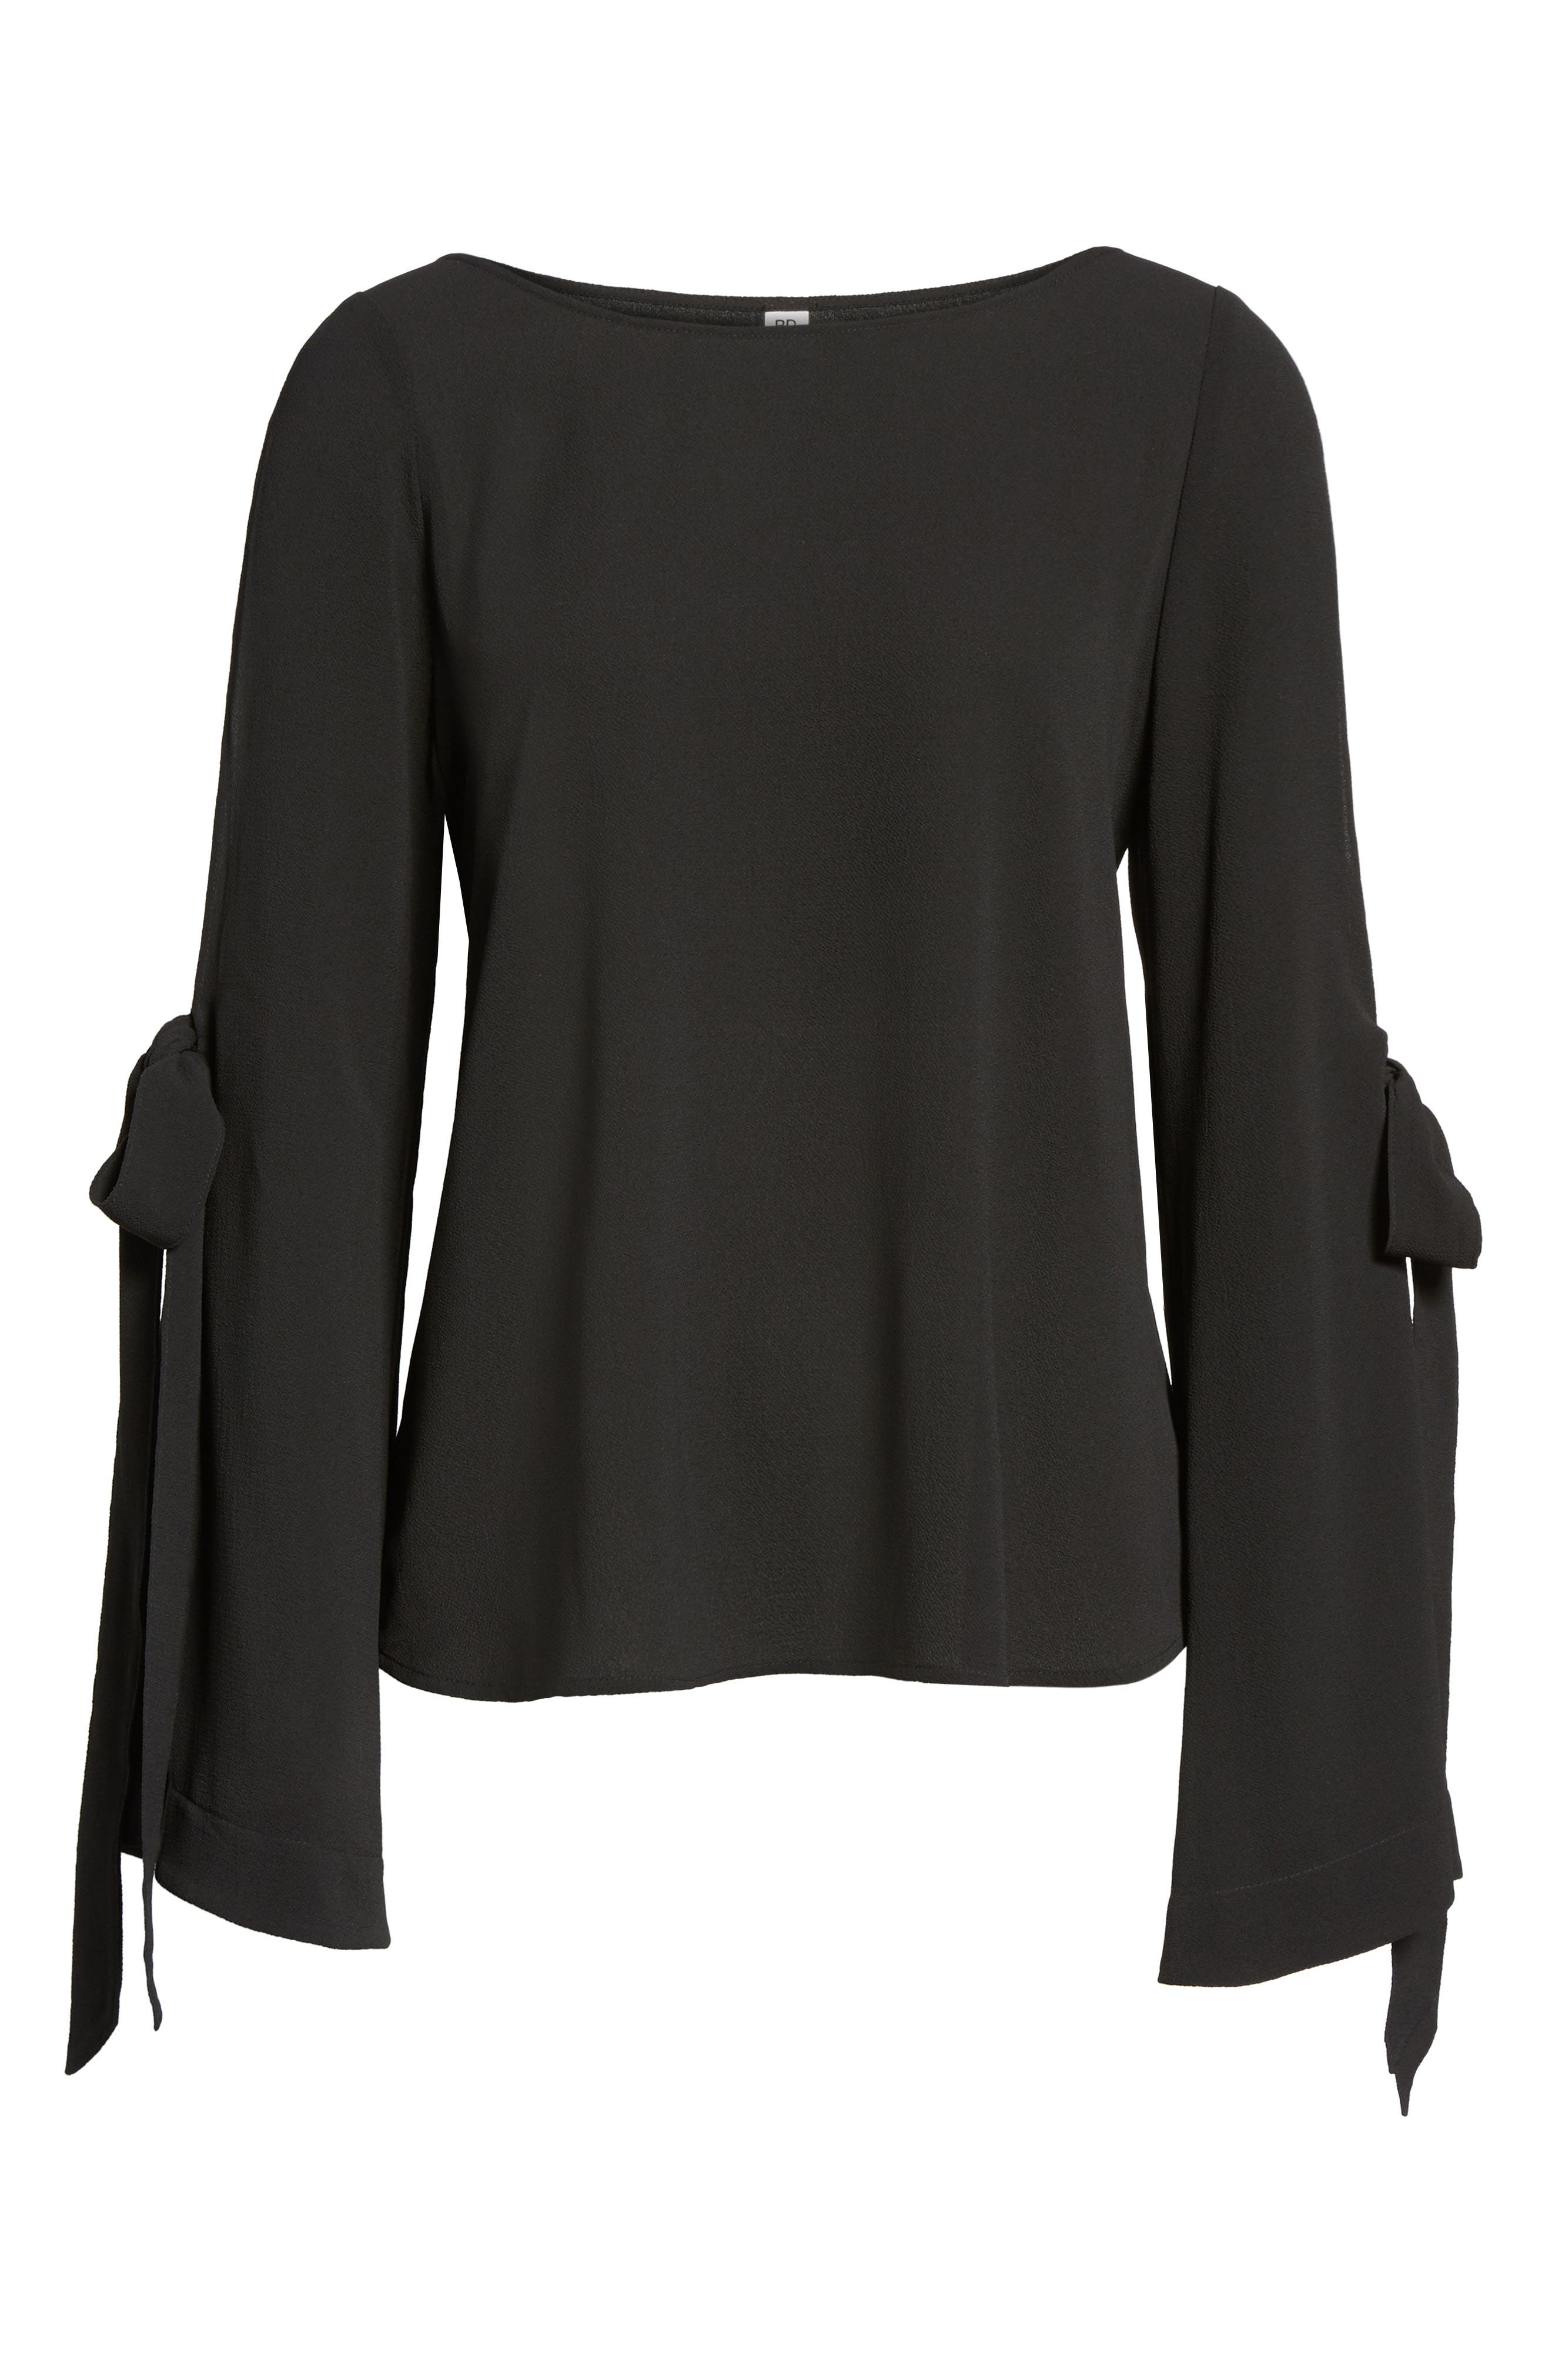 Tie Sleeve Blouse,                             Alternate thumbnail 6, color,                             001